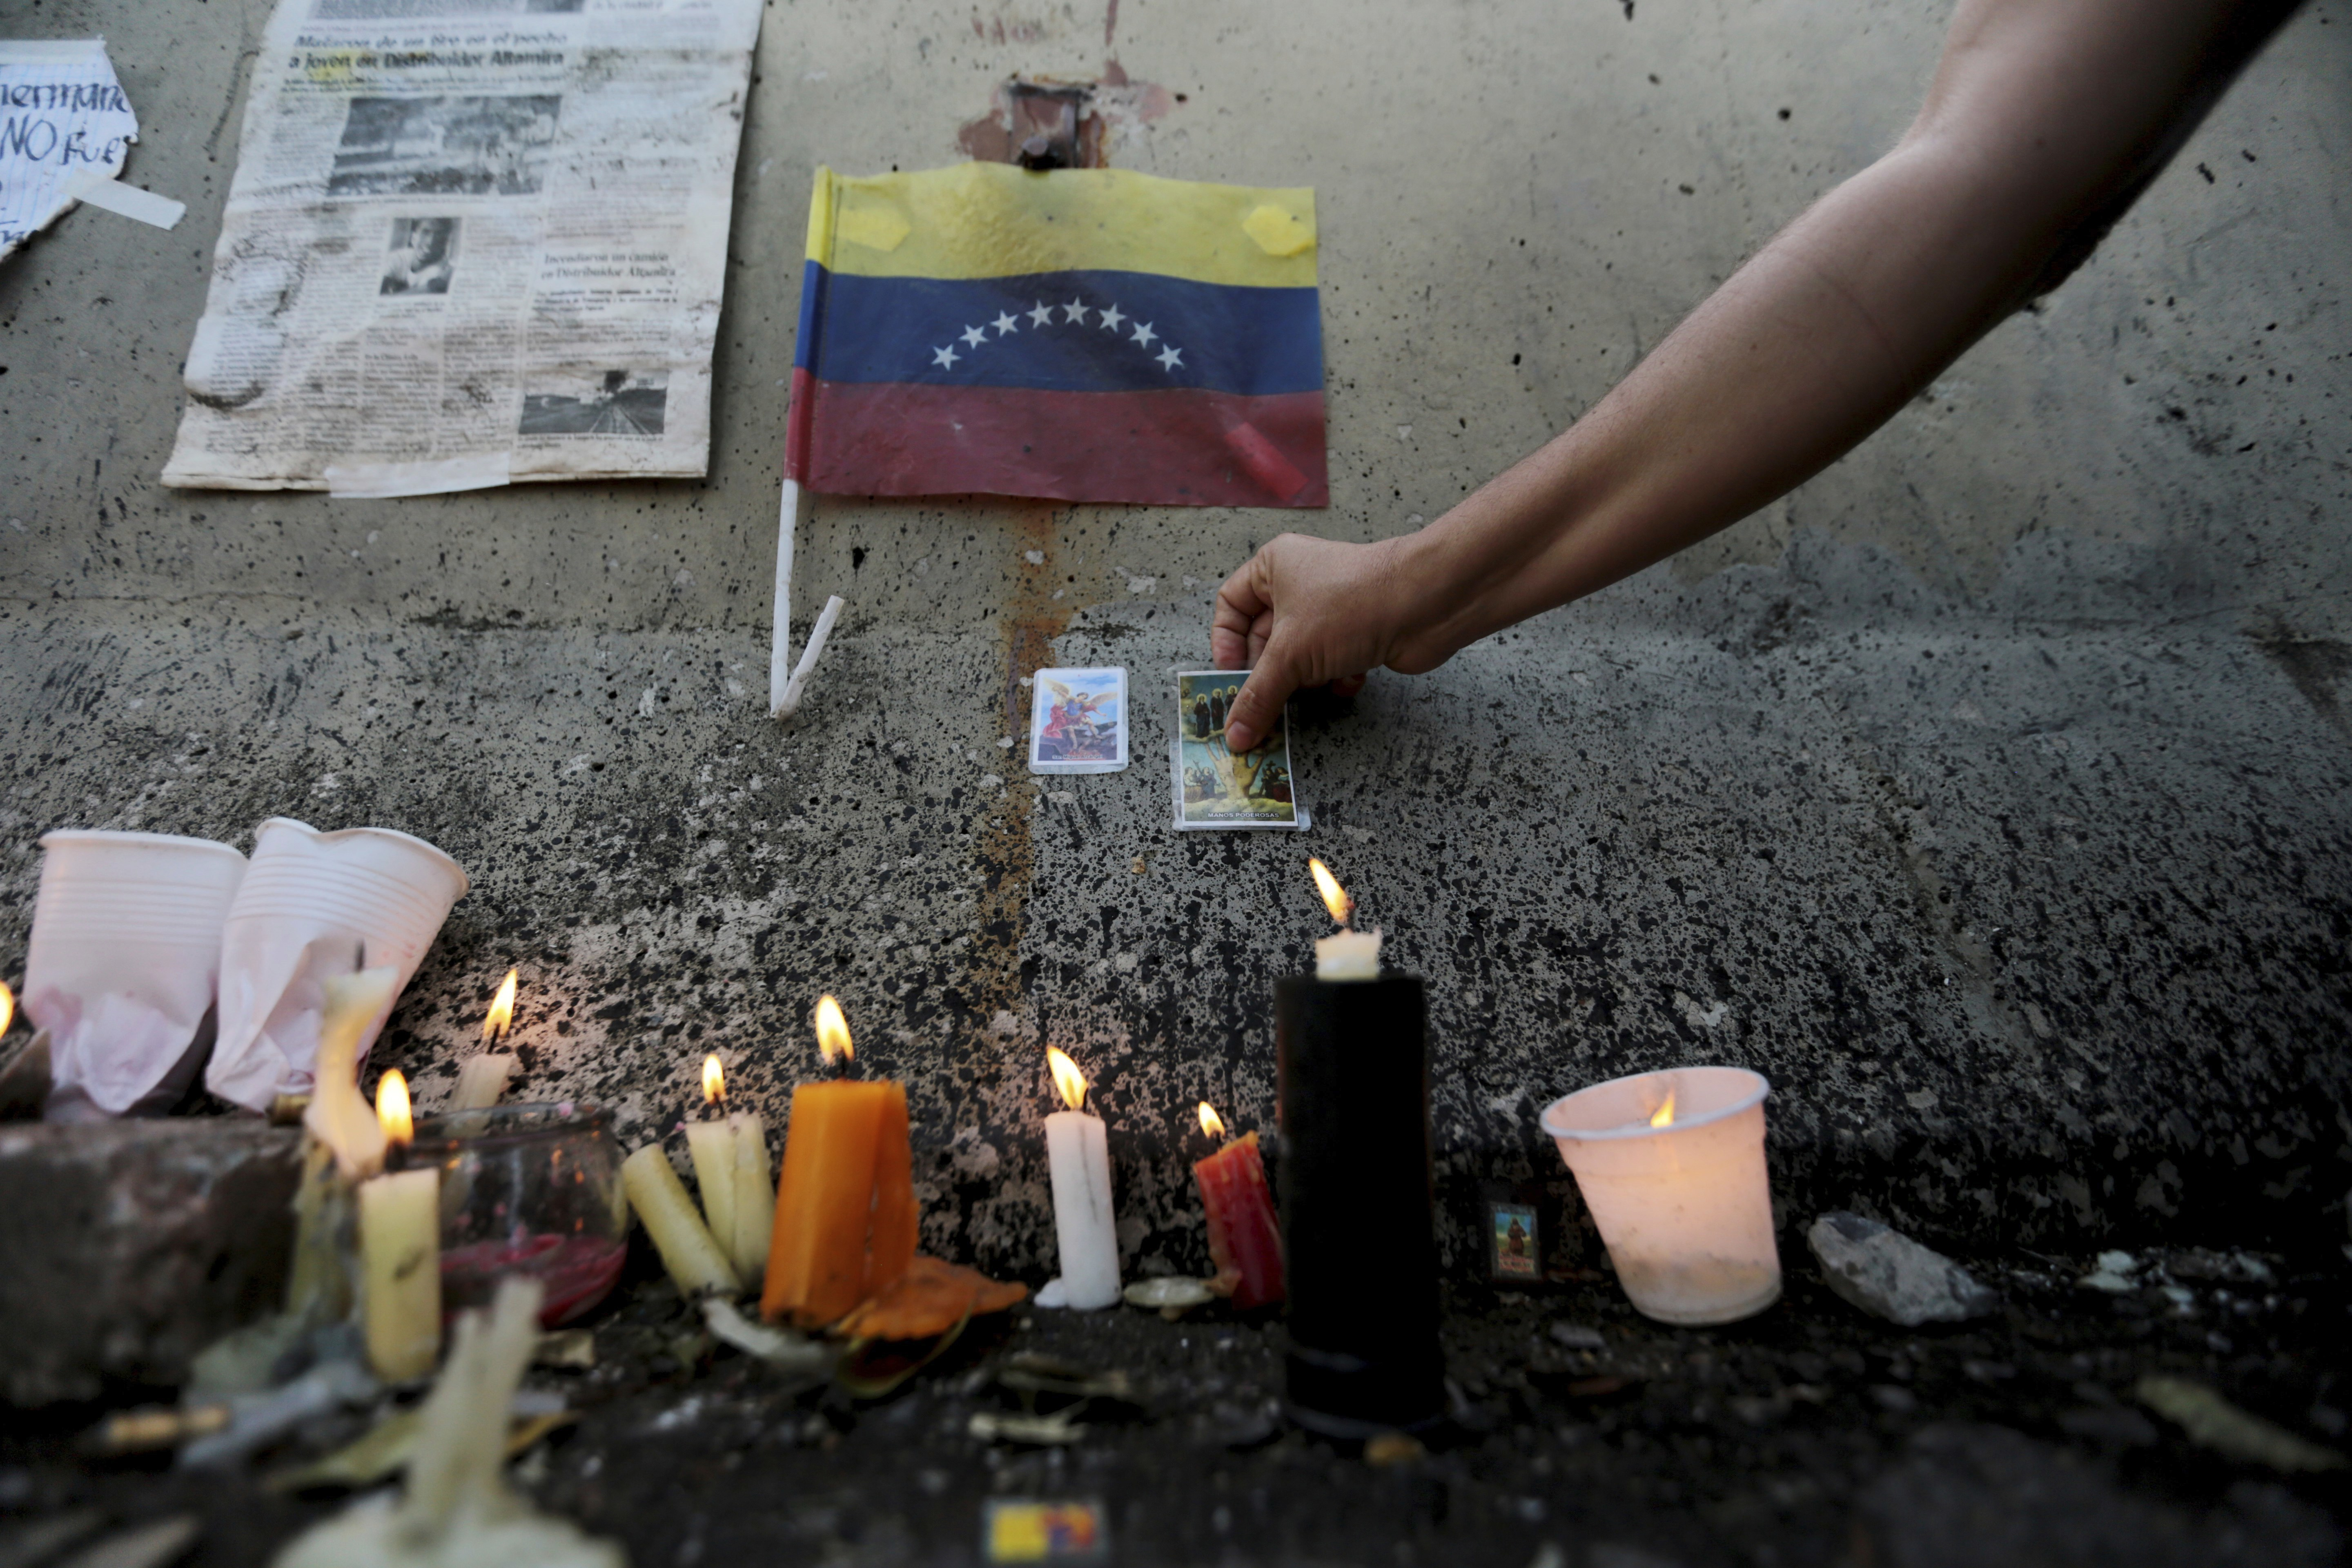 A woman adds a Powerful Hand prayer card to the makeshift memorial created on the spot a student was killed during clashes between anti-government protesters and Bolivarian National Guard officers, during a vigil in Caracas, Venezuela, Wednesday, June 21, 2017. The 17-year-old student was shot dead on Monday the Public Prosecutor's Office said, bringing the death toll to 72 in two months of demonstrations against Venezuelan President Nicolas Maduro. (AP Photo/Fernando Llano)